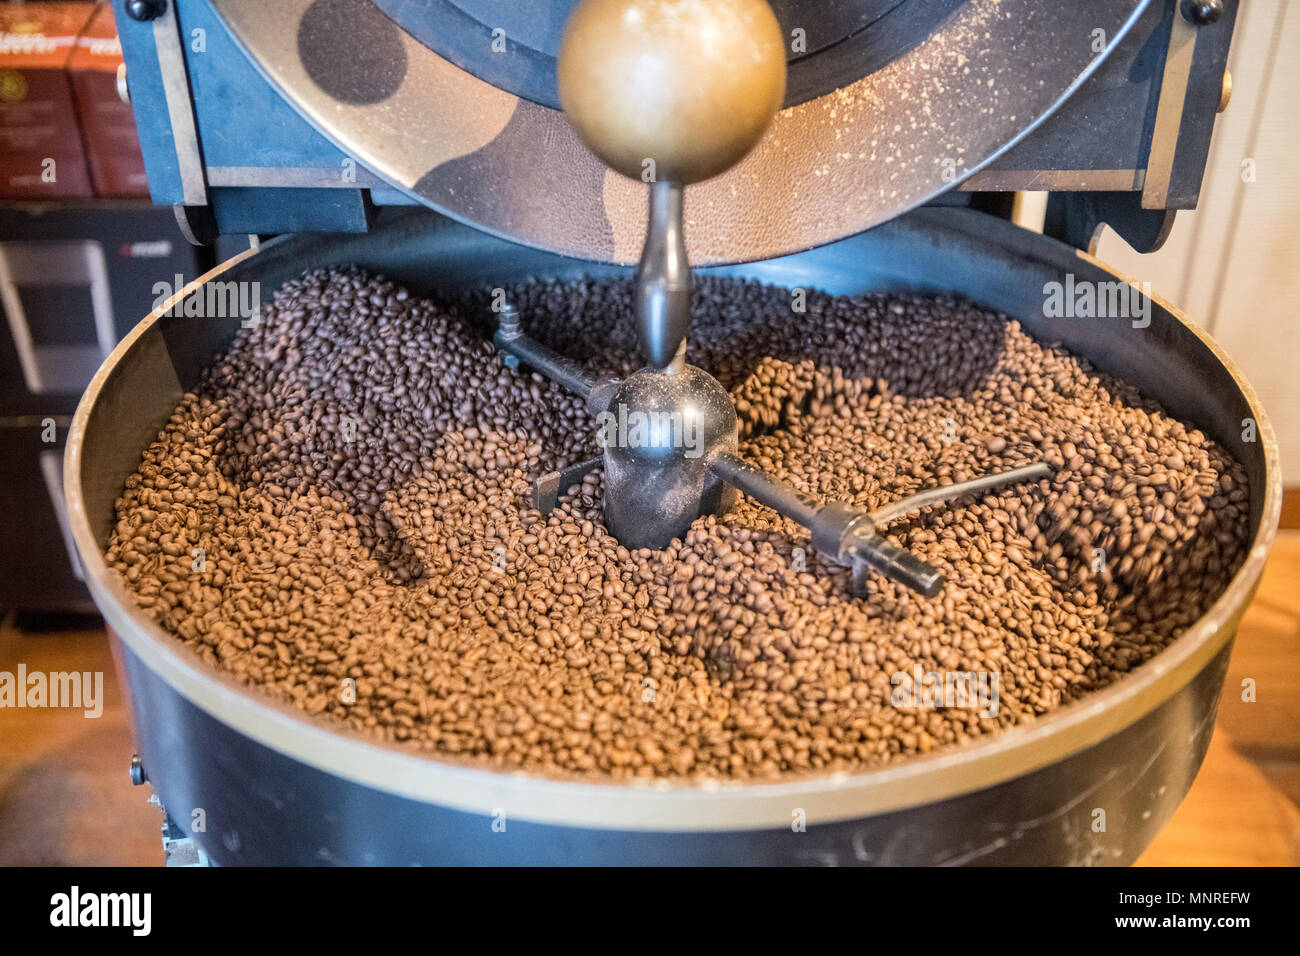 A mechanical arm of a machine slowly rotates freshly roasted coffee beans to cool them down, Istanbul, Turkey - Stock Image